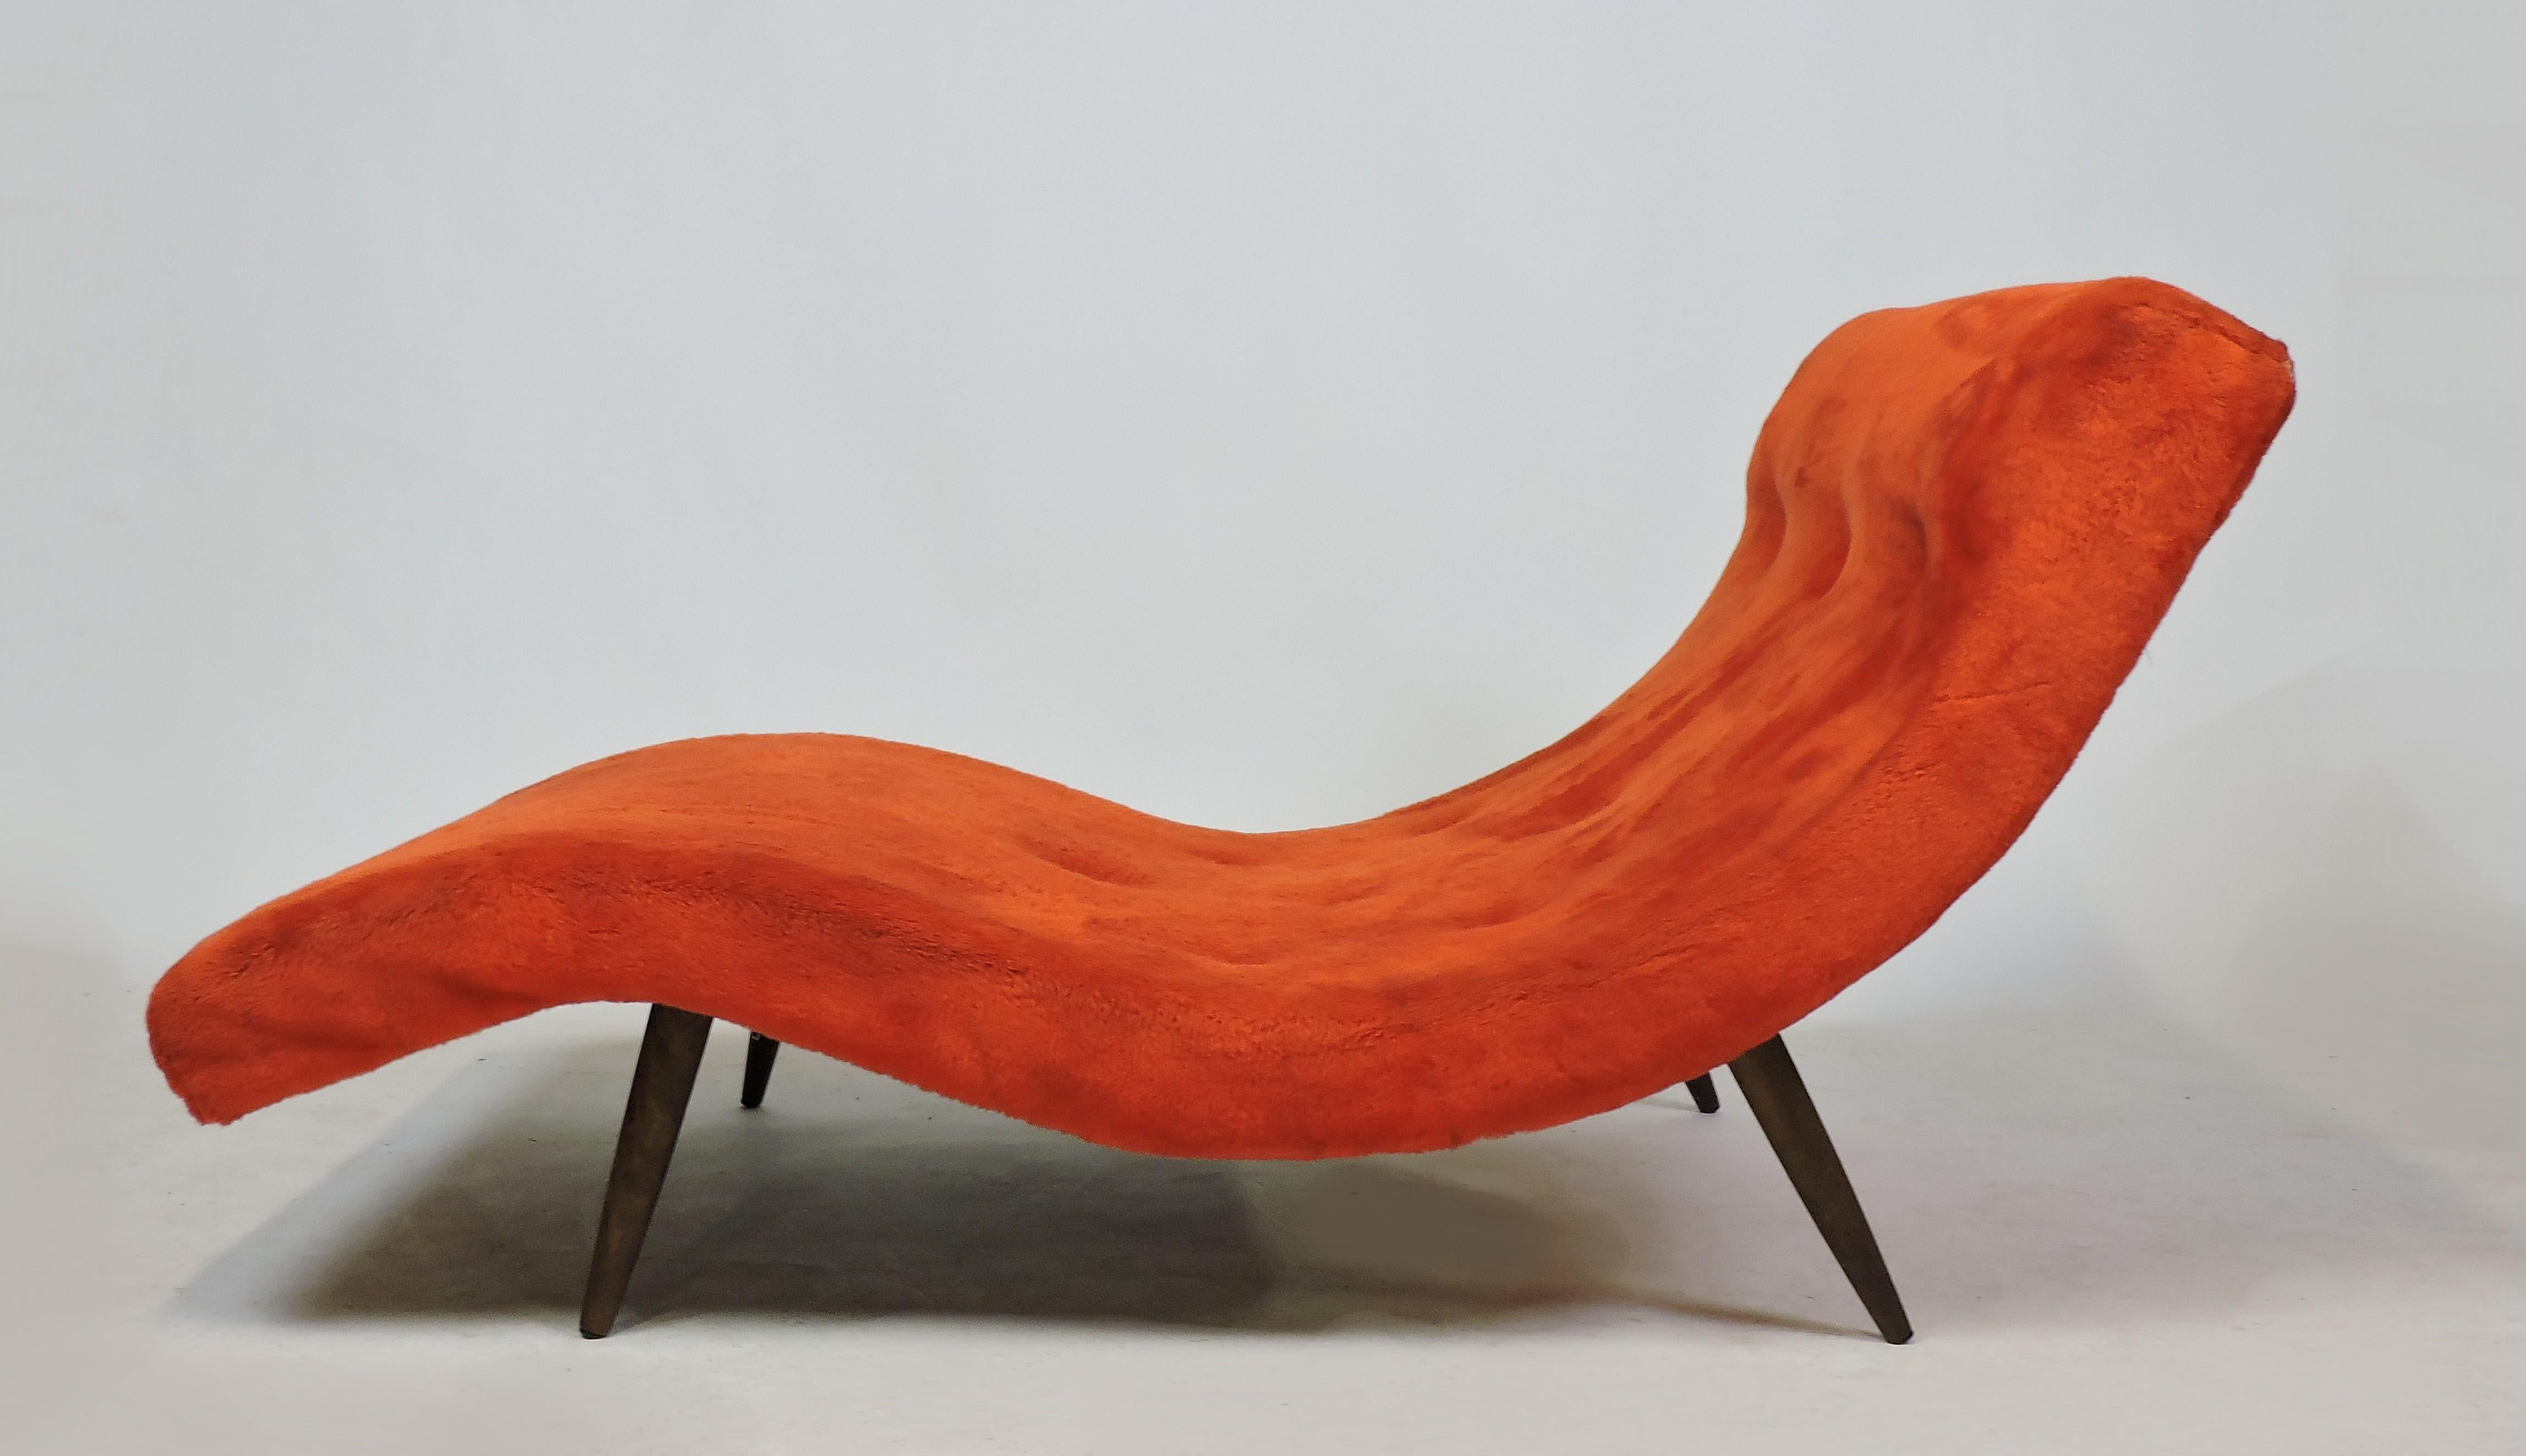 Stupendous Adrian Pearsall Mid Century Modern Wave Chaise Lounge Chair Sofa Model 108 C Andrewgaddart Wooden Chair Designs For Living Room Andrewgaddartcom